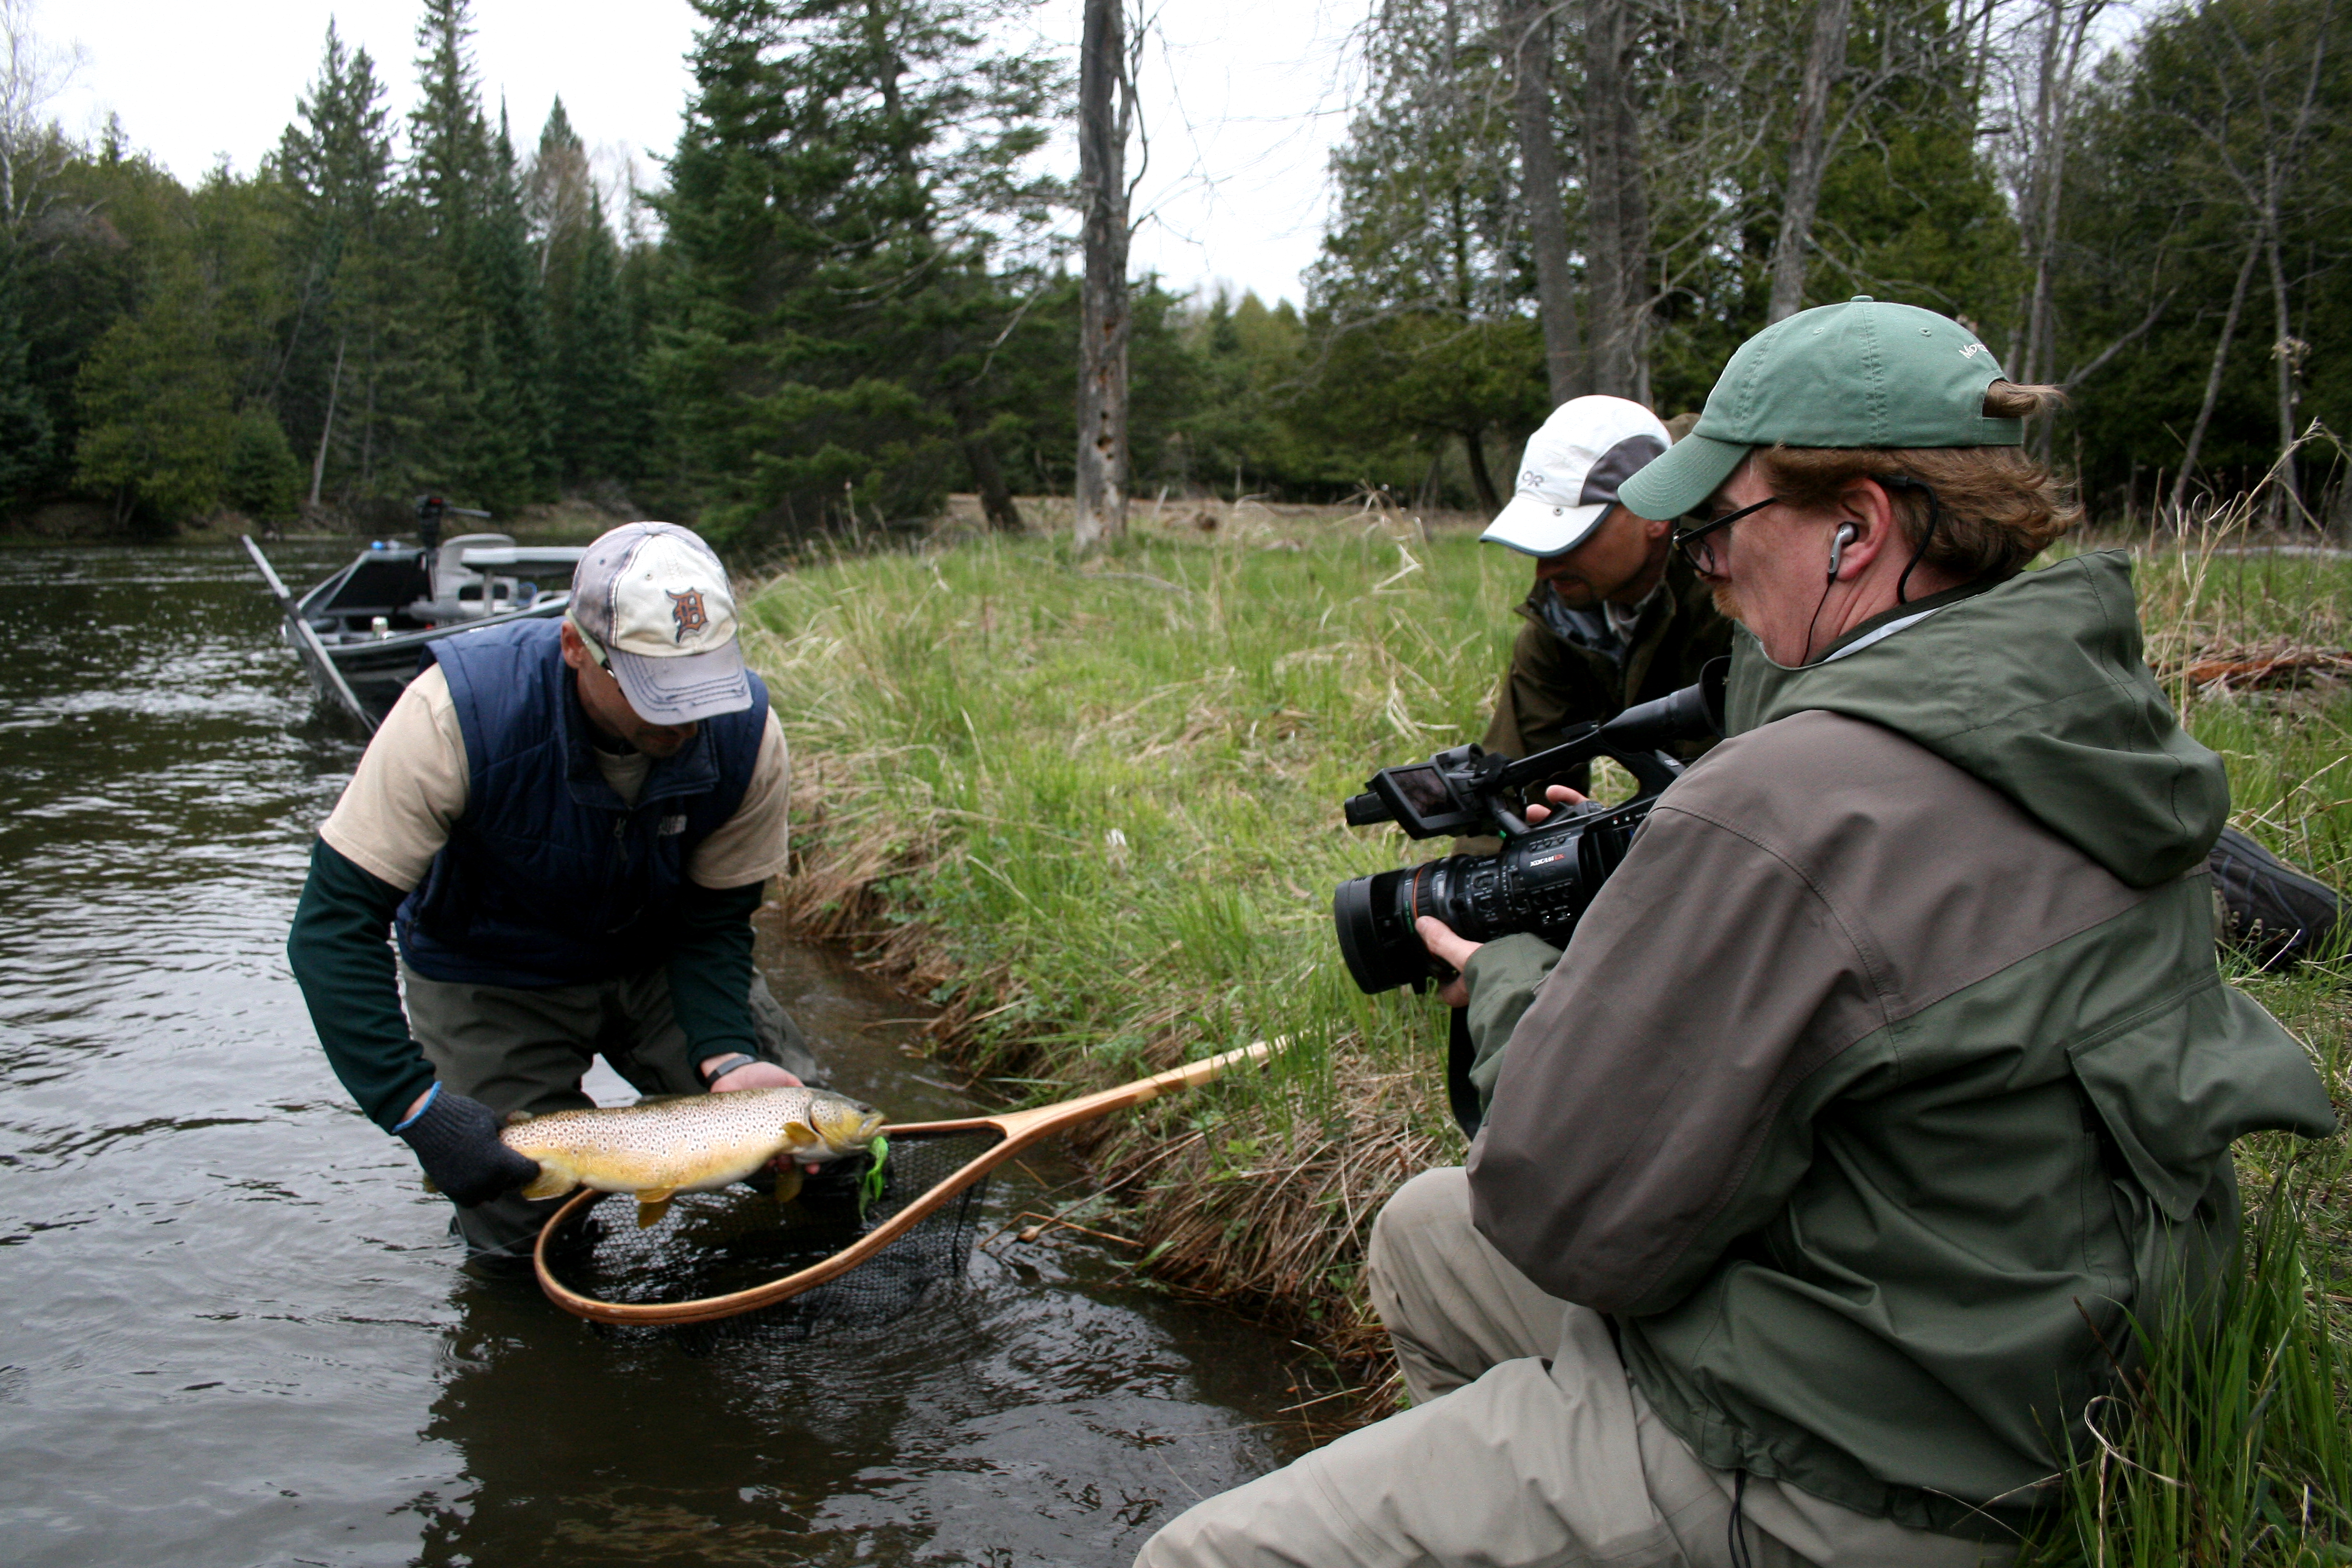 Fly tied flicks 2013 fly fishing film tour nets six stops for Fly fishing films